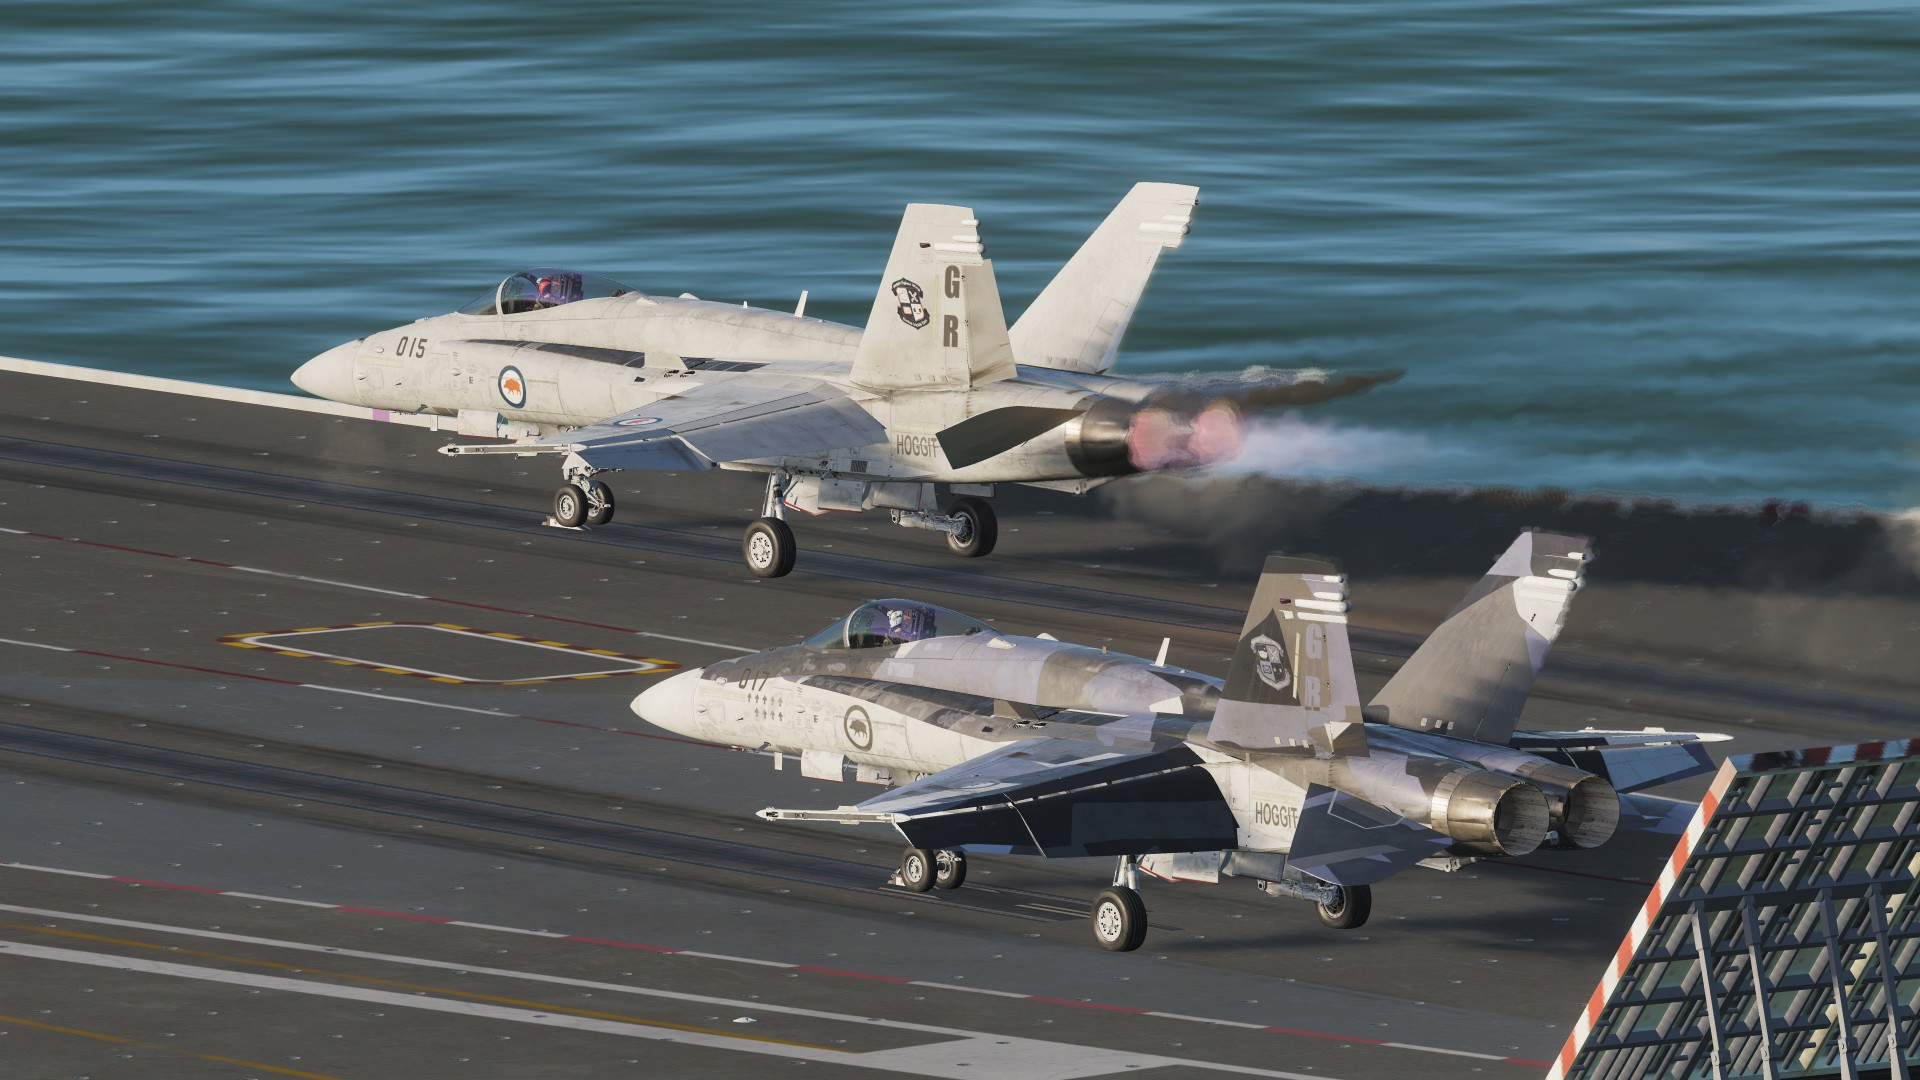 Hoggit Navy - Wasps (F/A-18C Hornet livery pack)